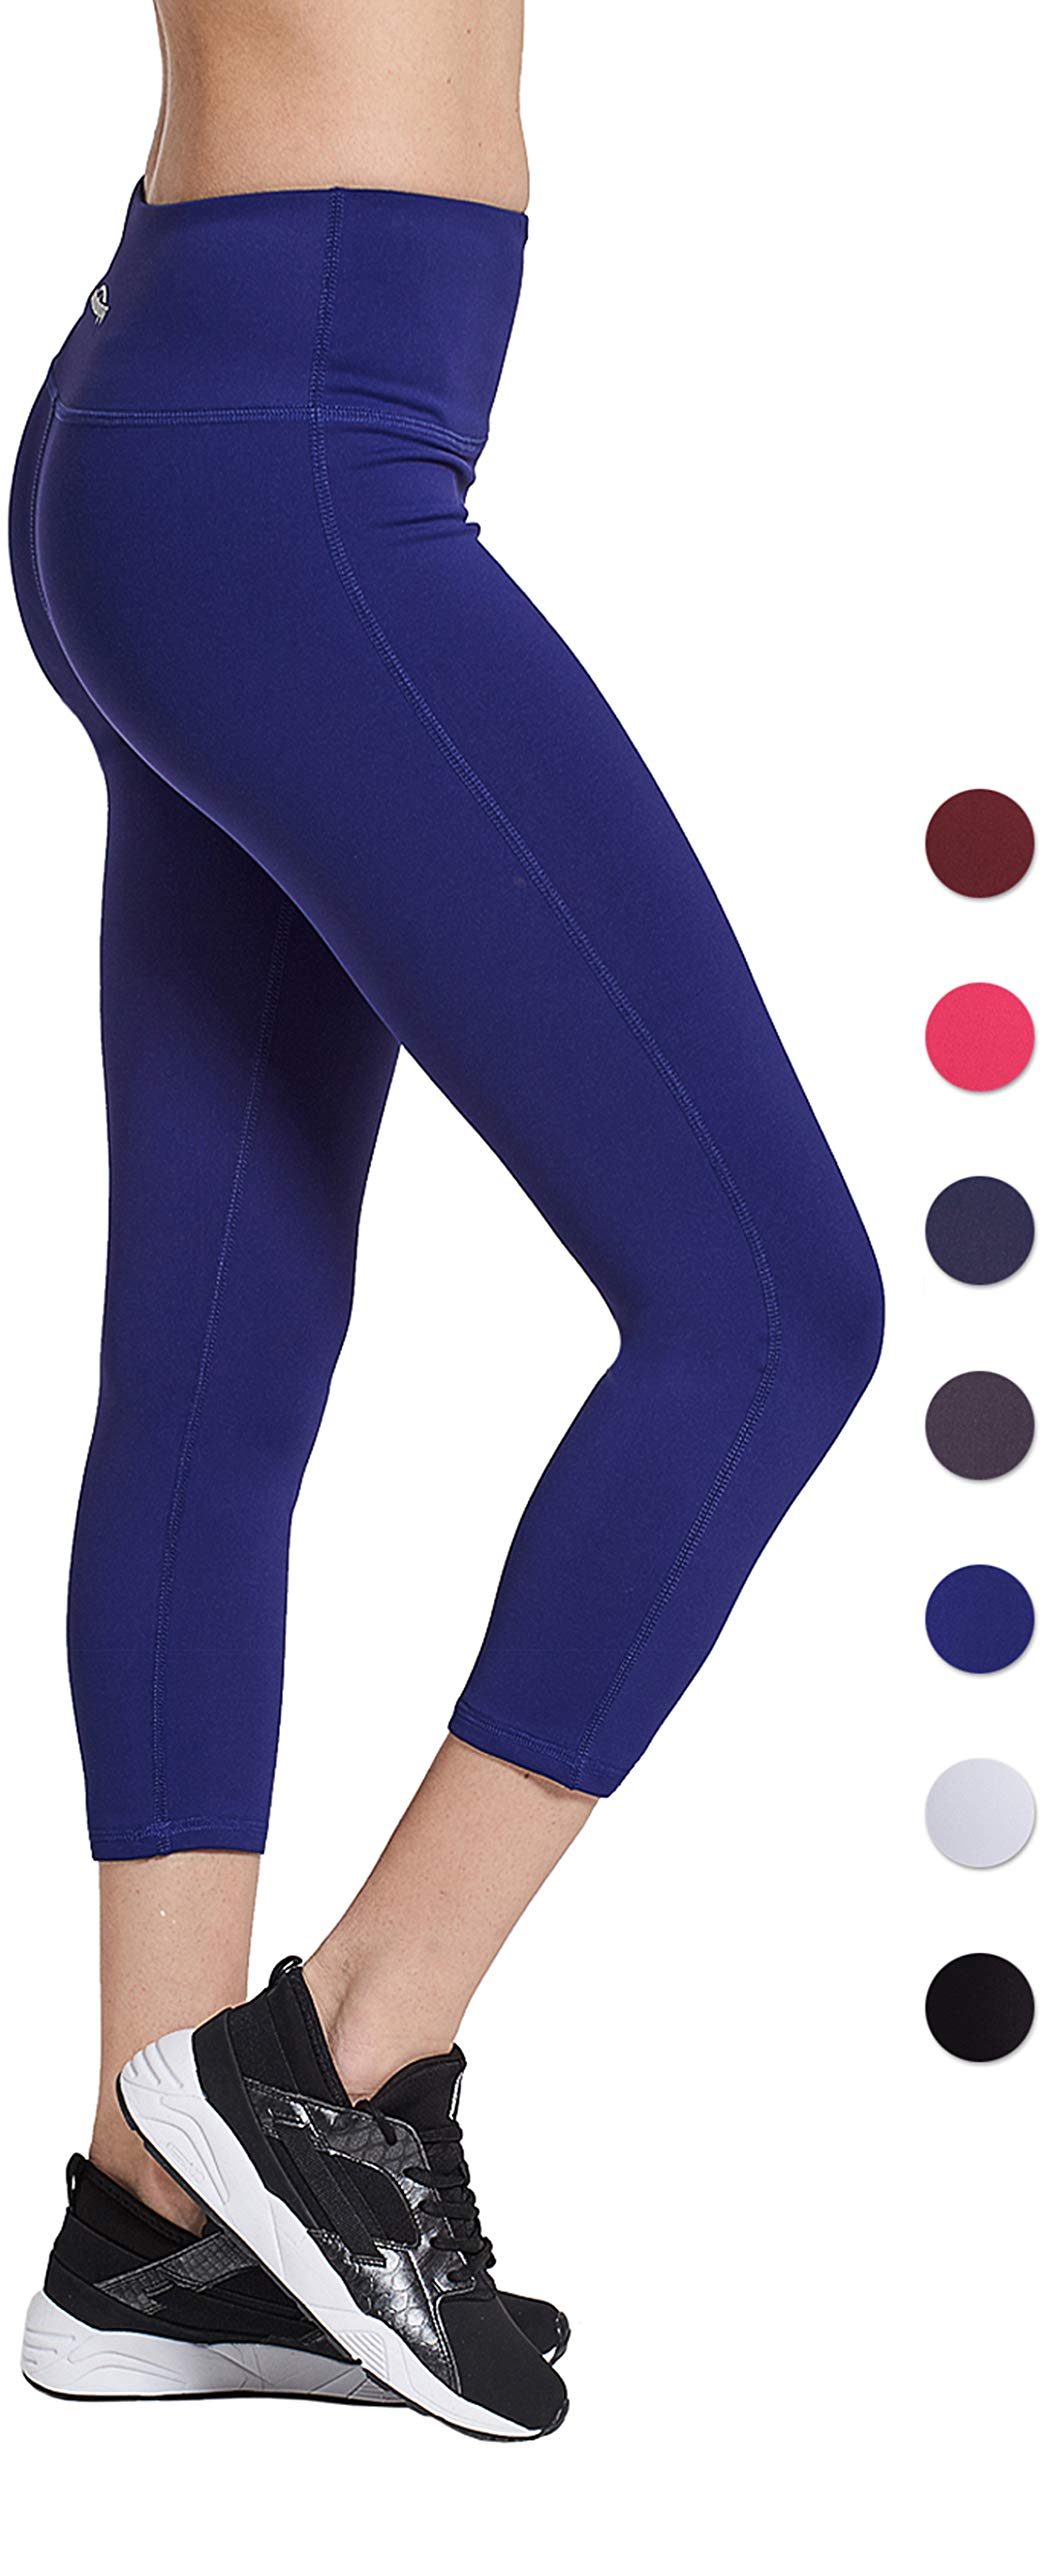 8d34eb9995 Galleon - COOLOMG Women's Yoga Capri Leggings Workout Running Pants Non  See-Through With Inner Pocket Dark Blue Adults X-Large